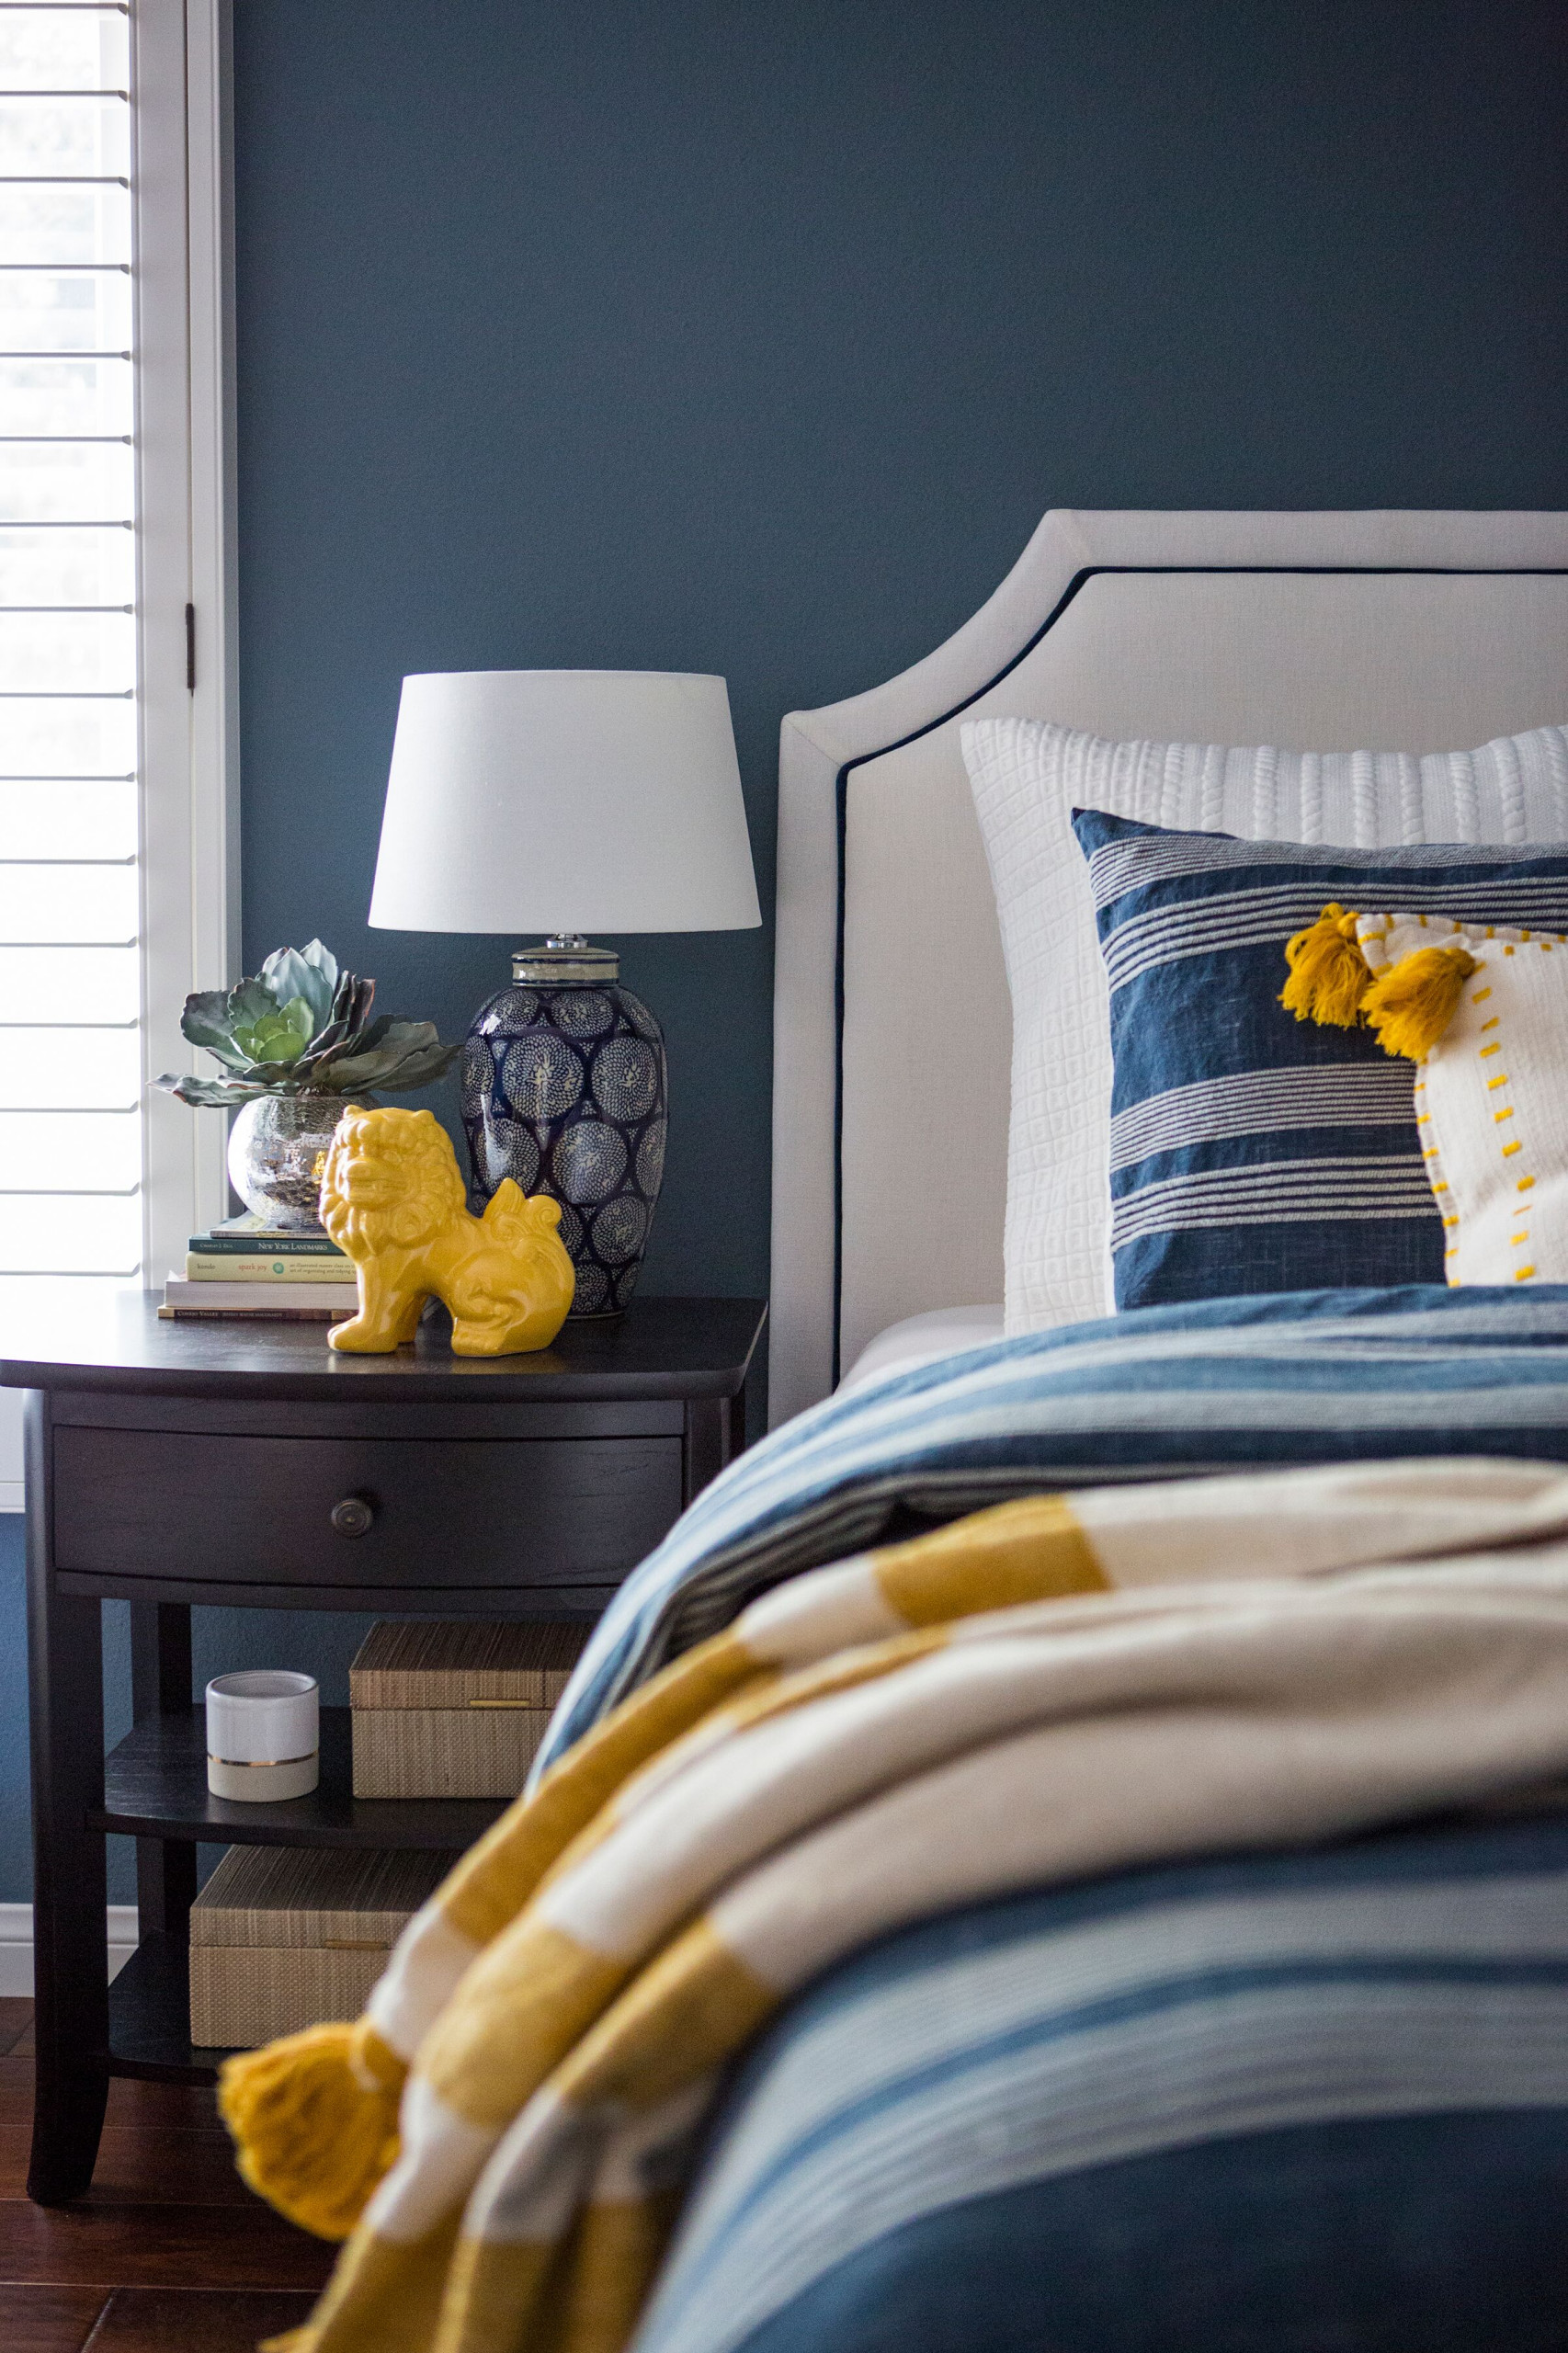 Best Navy and Mustard Bedroom Ideas - Image via Jennifer Grey Interiors